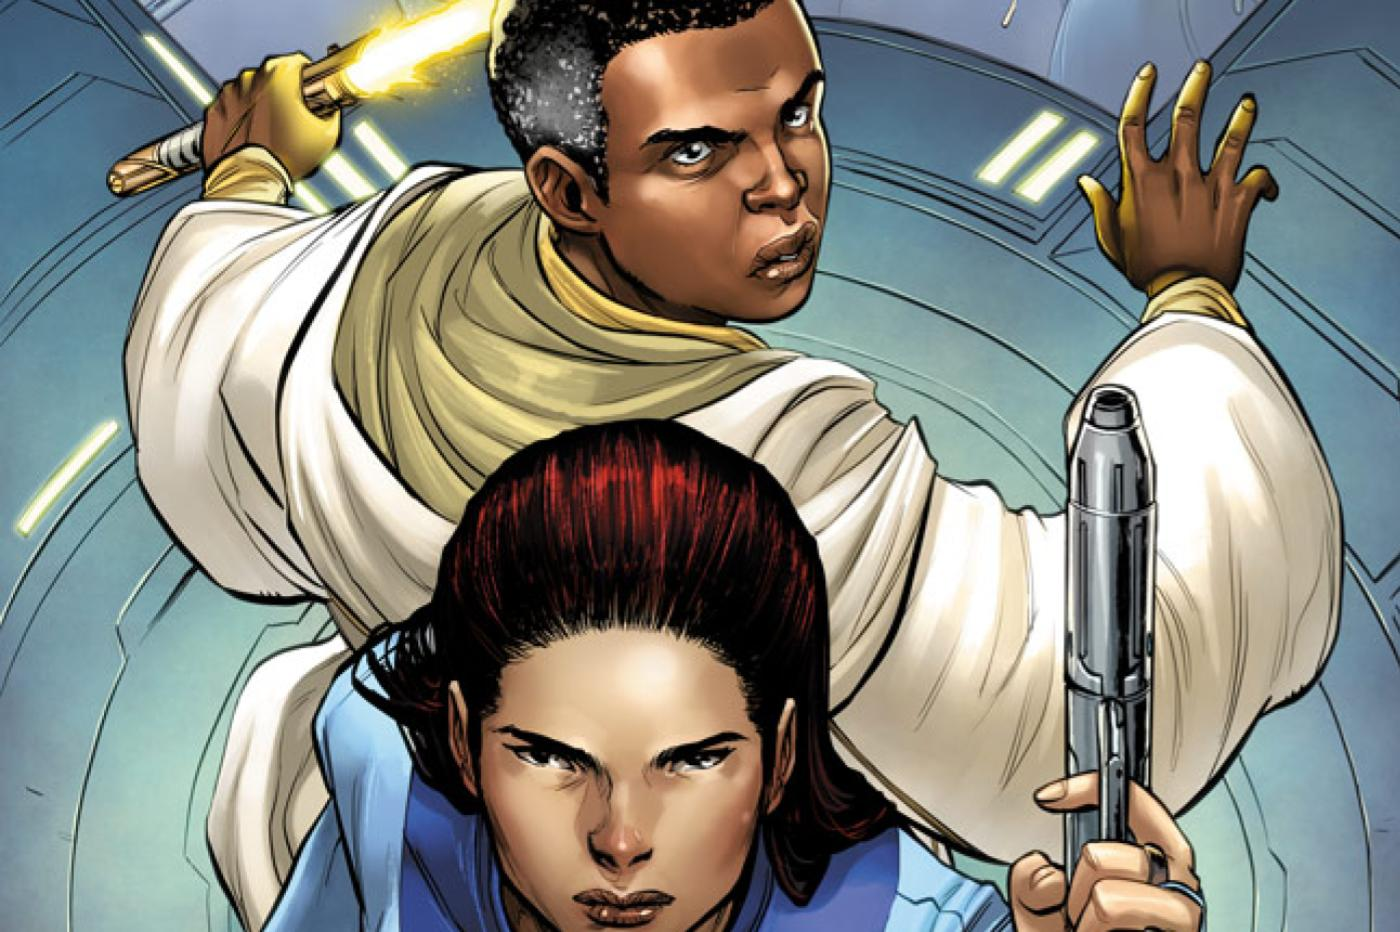 Couverture alternative pour Star Wars The High Republic Trail of Shadows